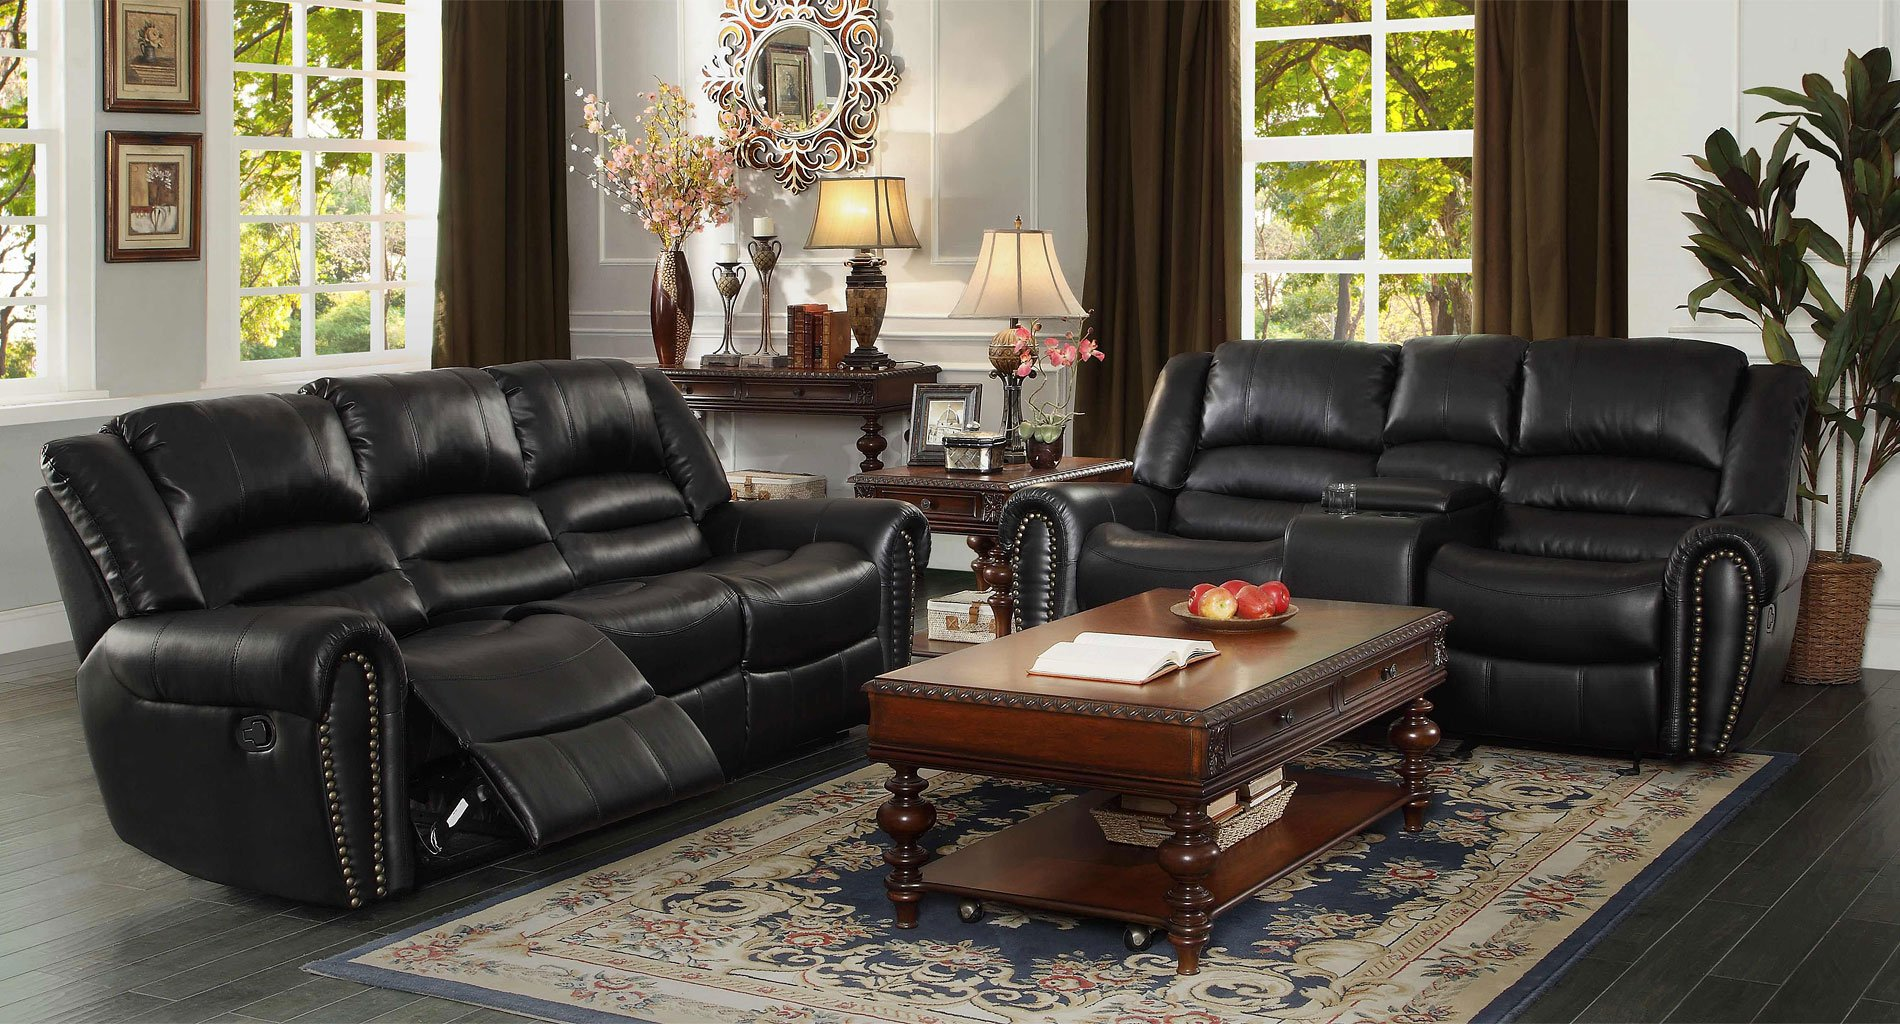 Center hill reclining living room set black living room sets living room furniture - Living room furniture designs catalogue ...